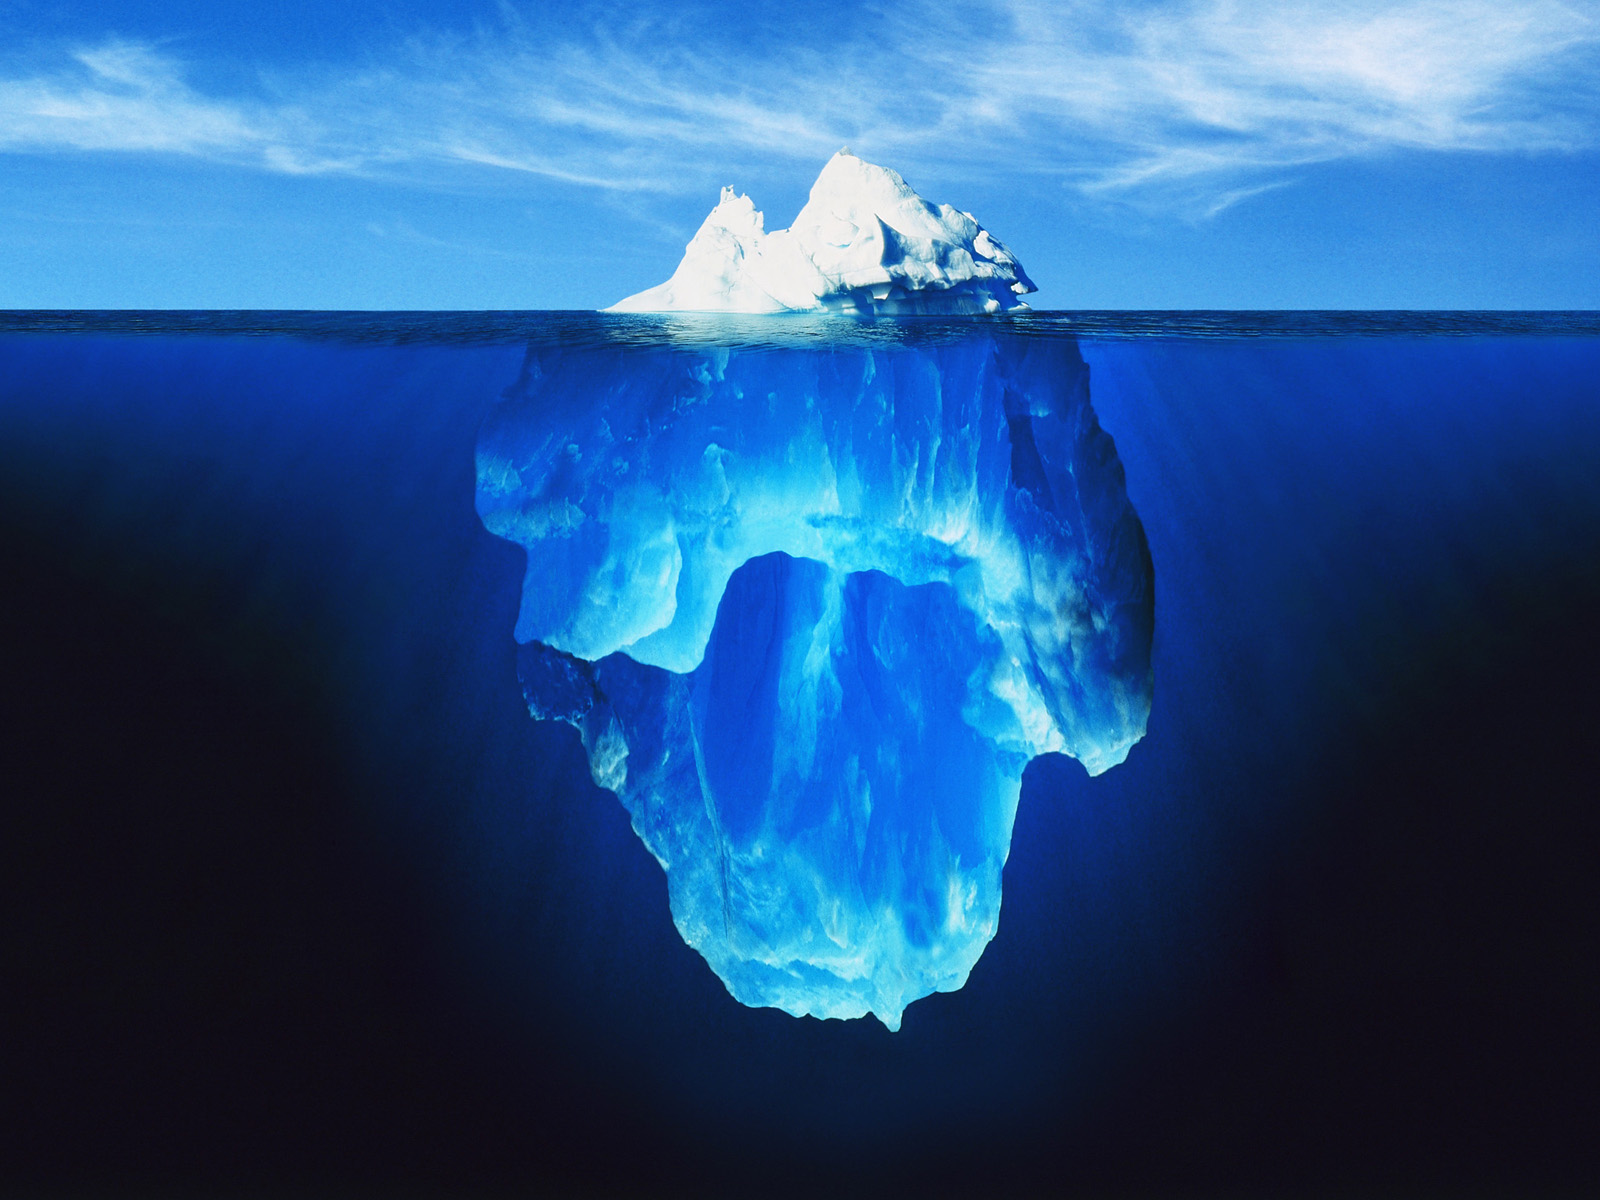 Iceberg clipart. Hd wallpaper background images